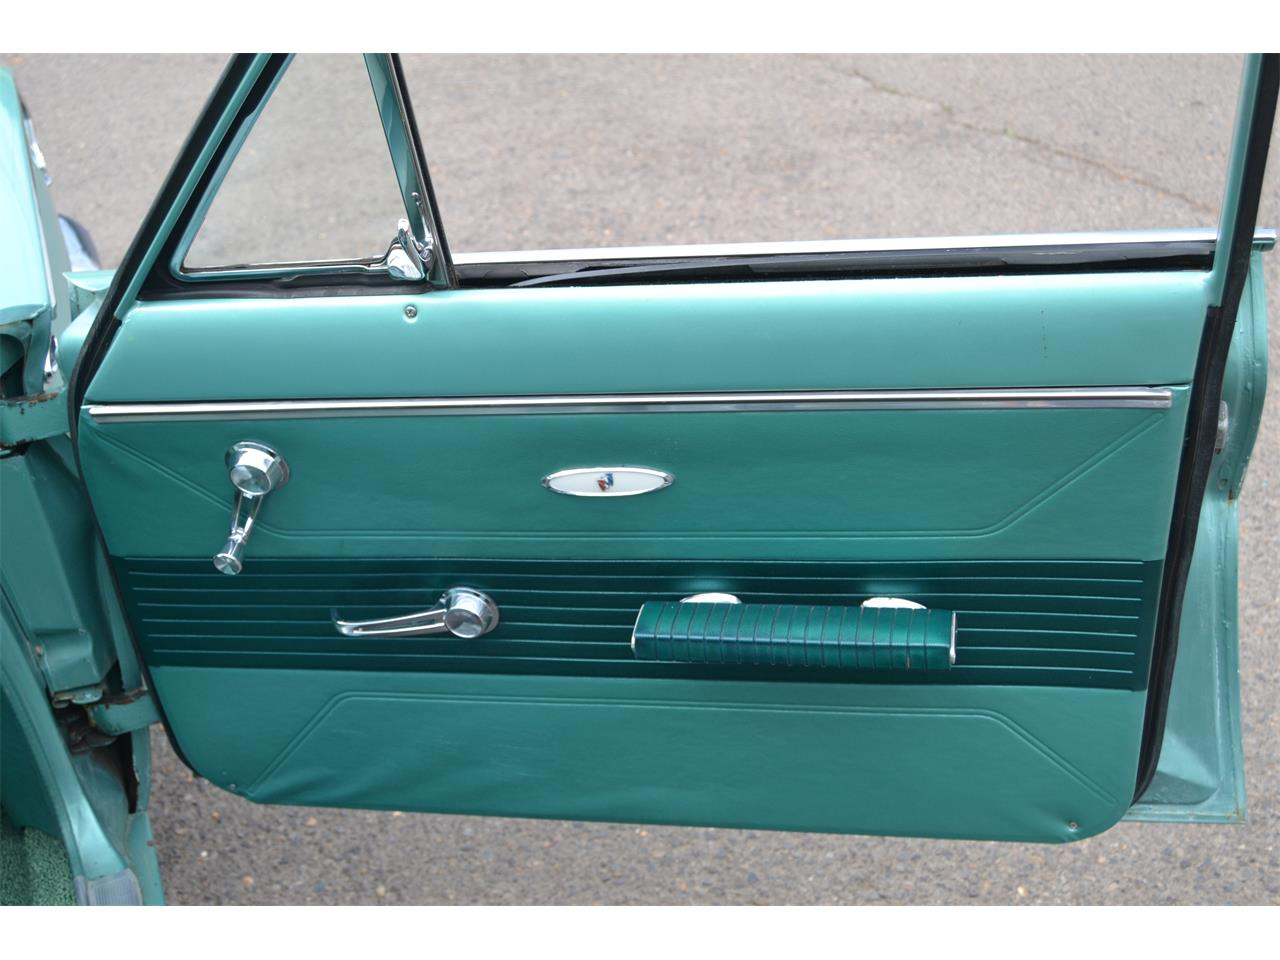 Large Picture of Classic 1961 Buick Special Deluxe - $6,850.00 - P7XC